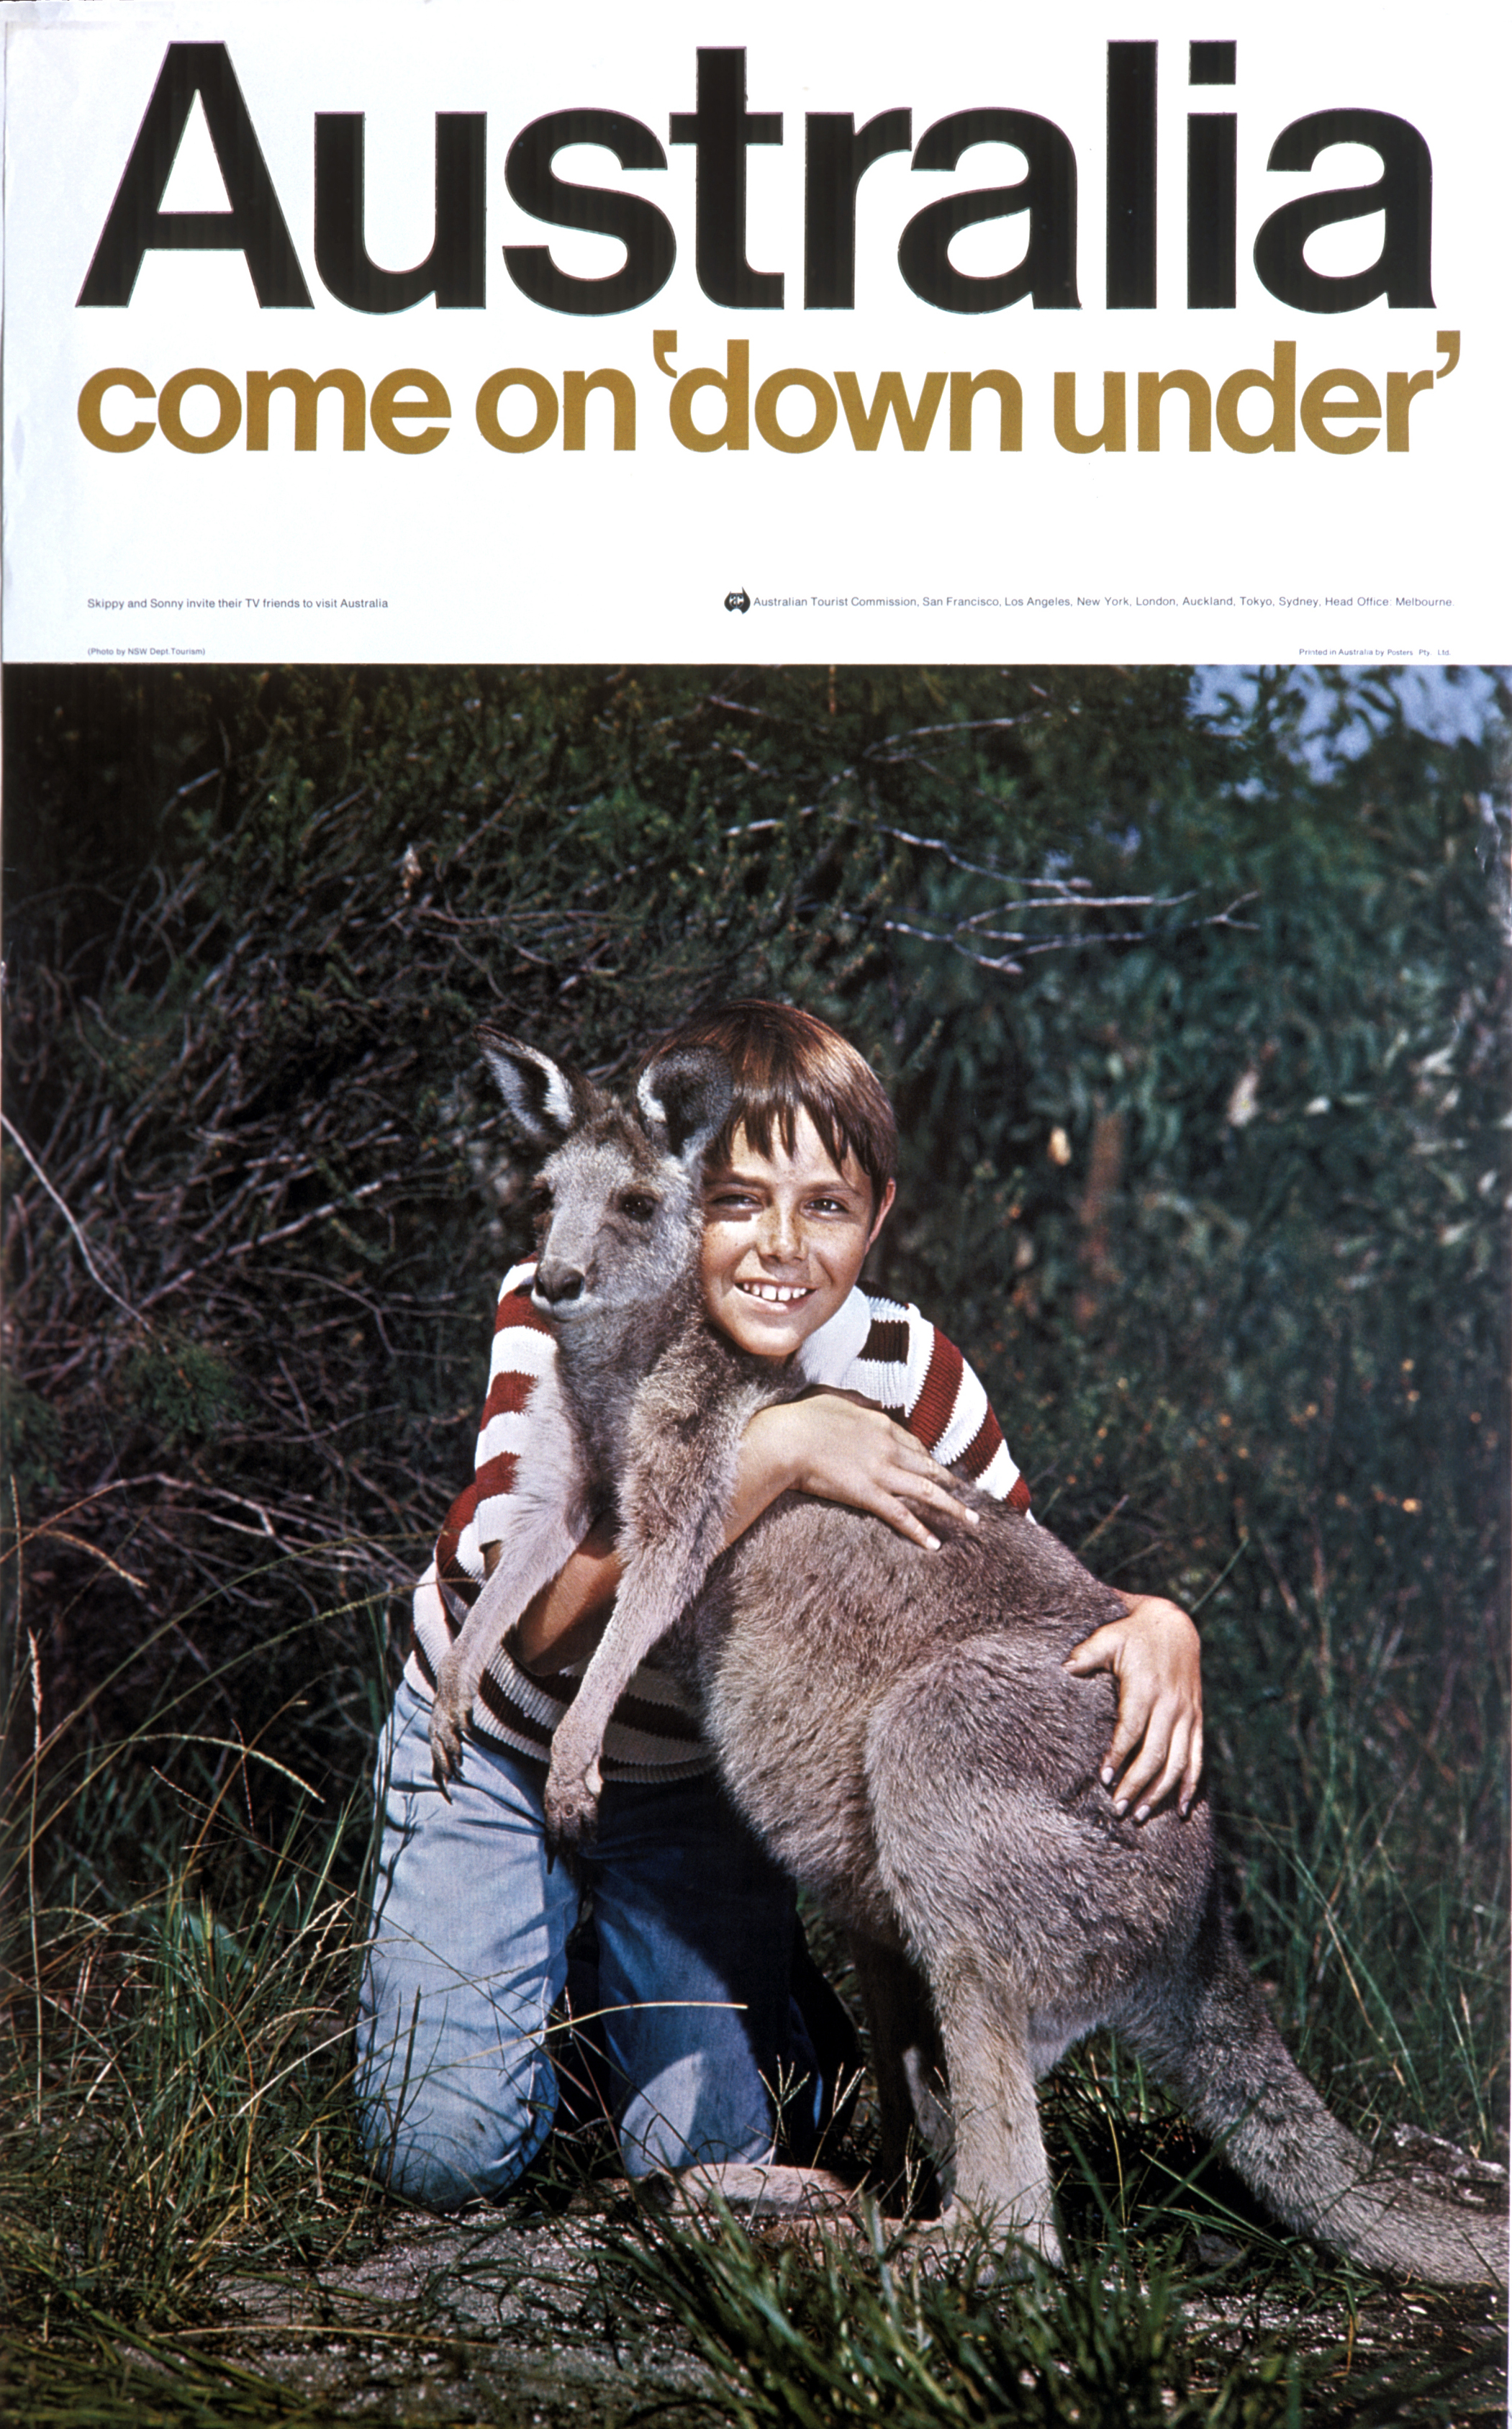 1970s_Come on Down Under featuring Skippy